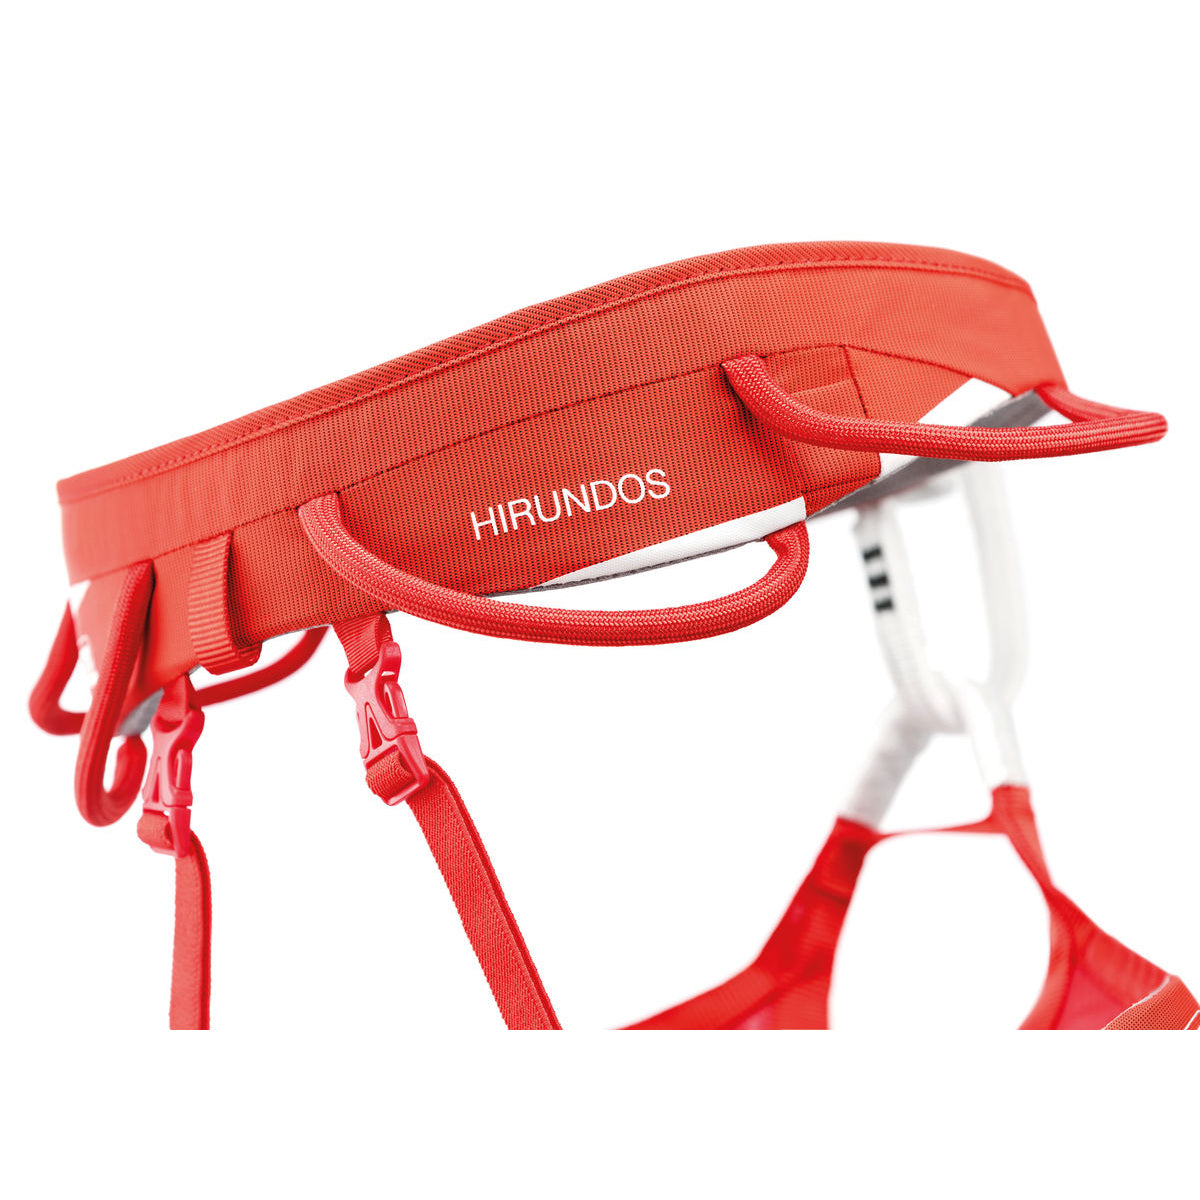 Petzl Hirundos Harness, rear/side view